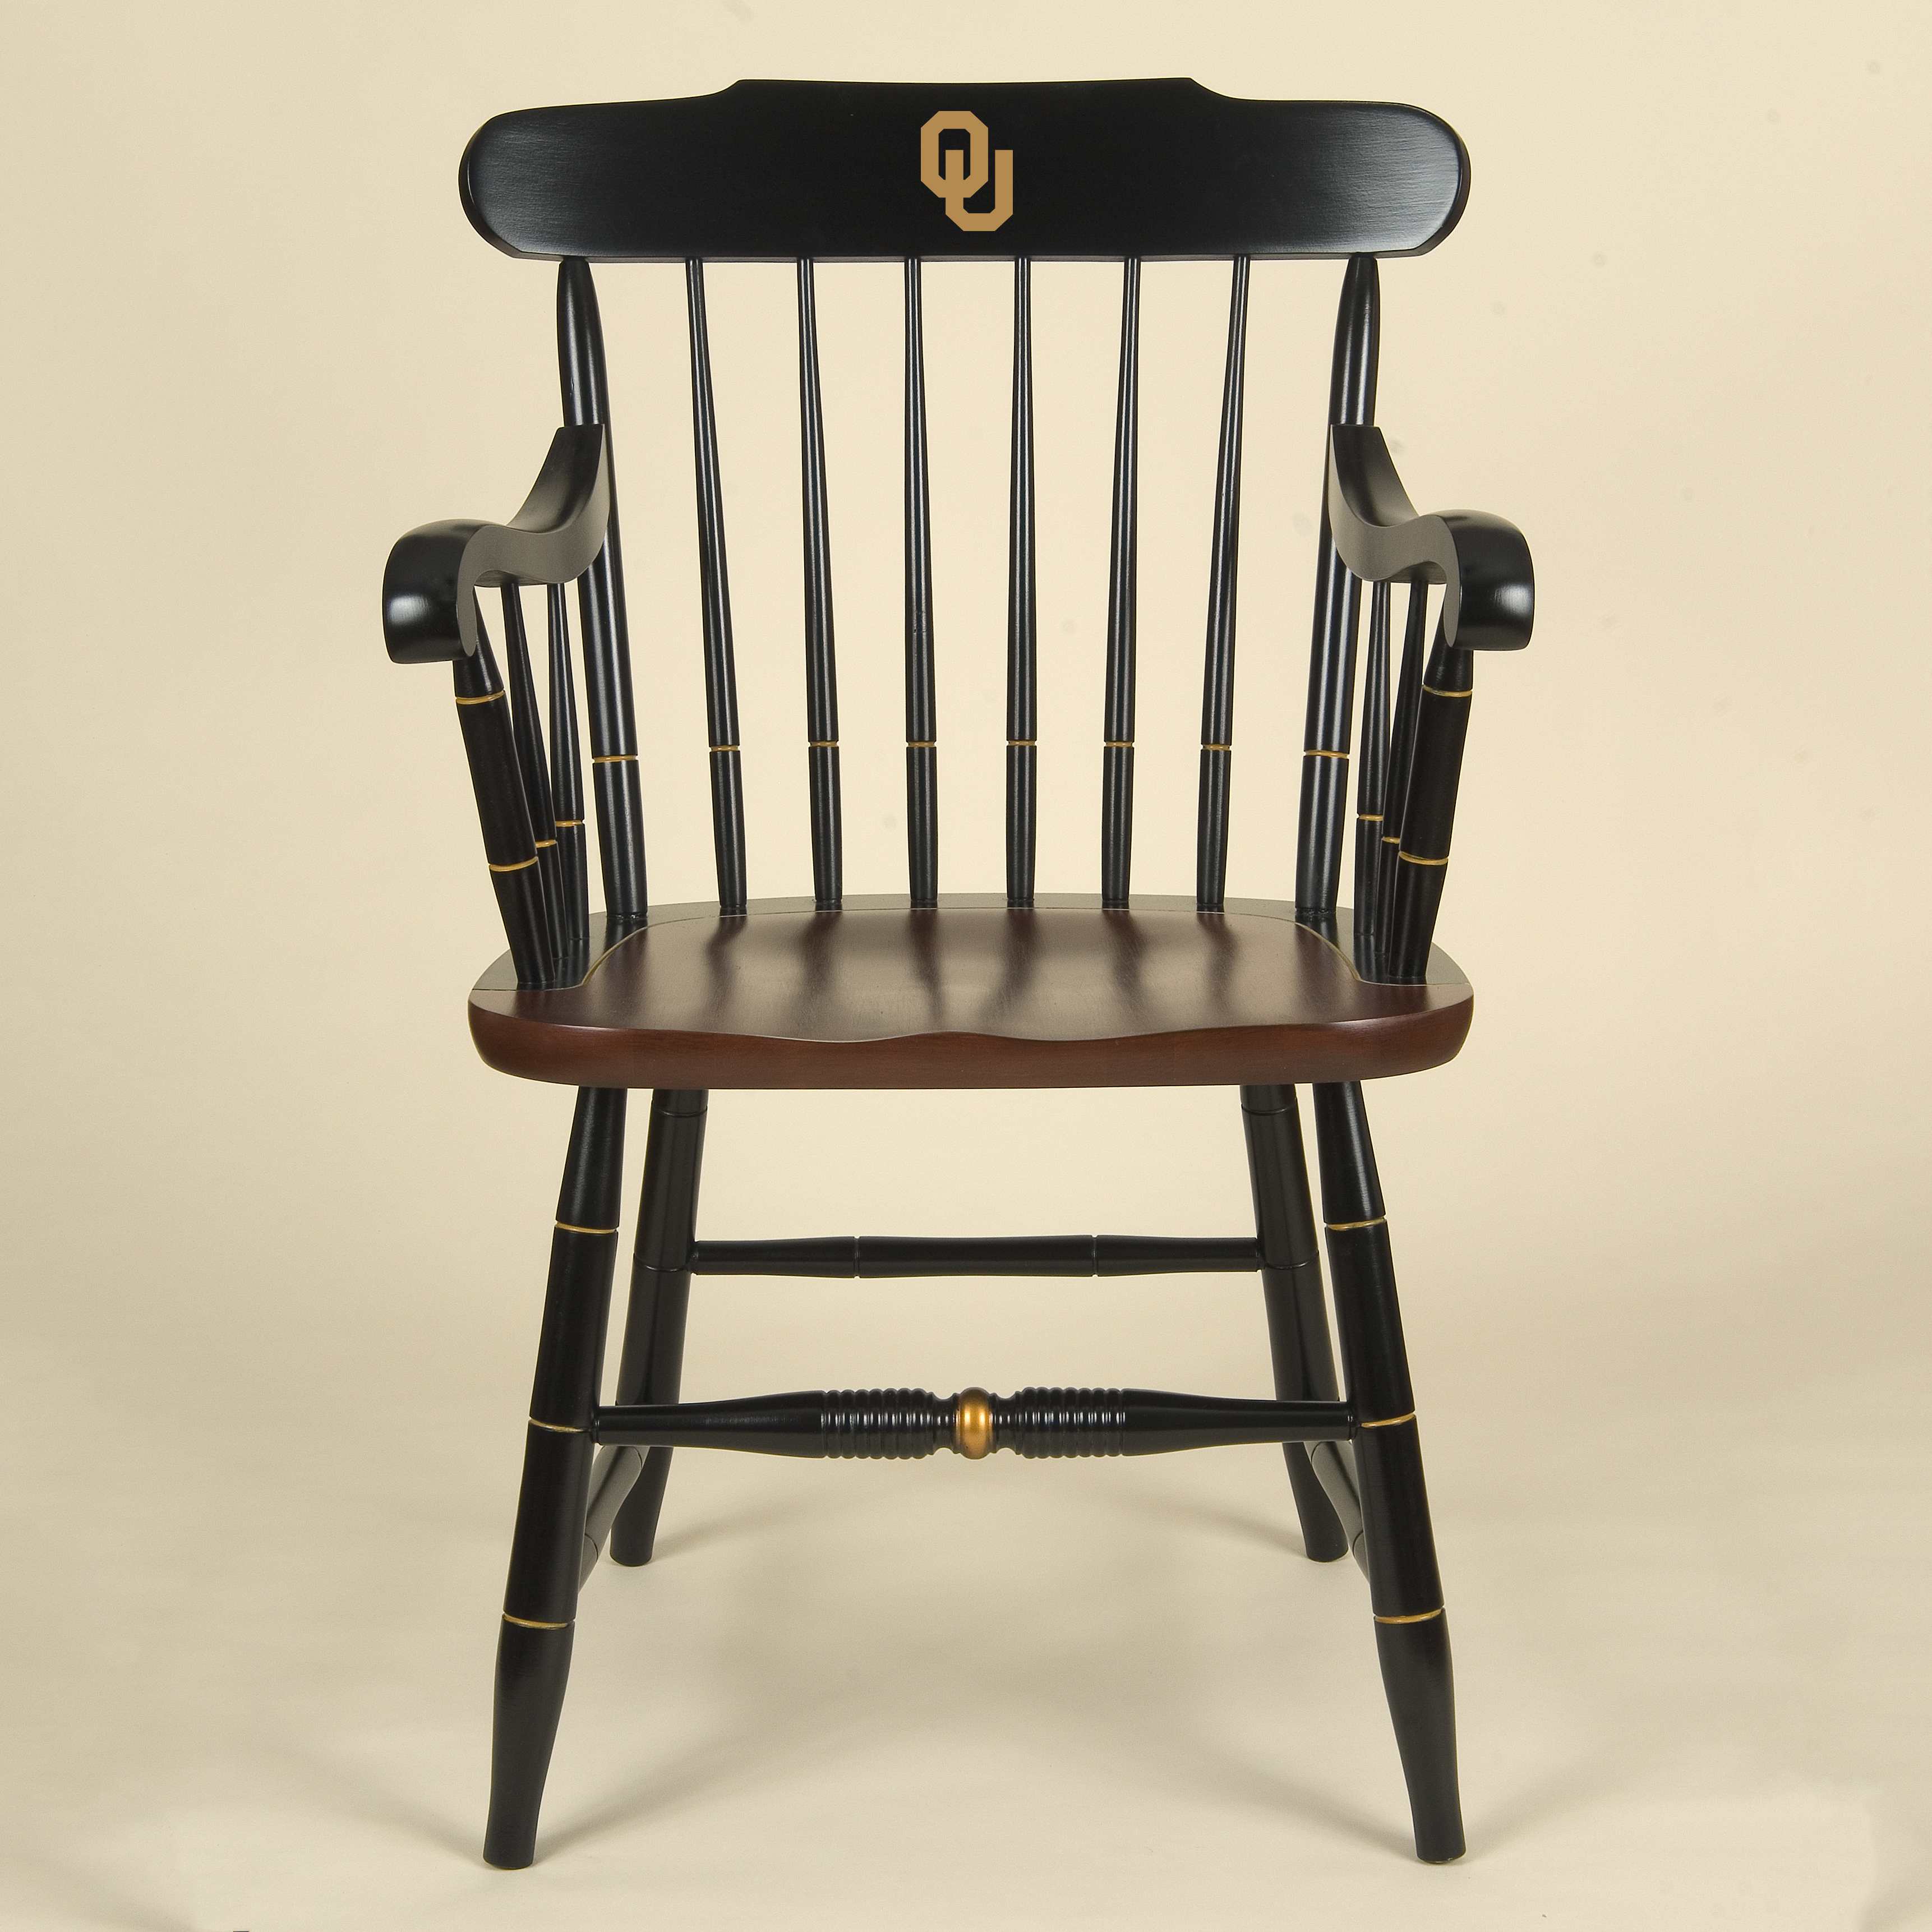 University of Oklahoma Captain's Chair by Hitchcock